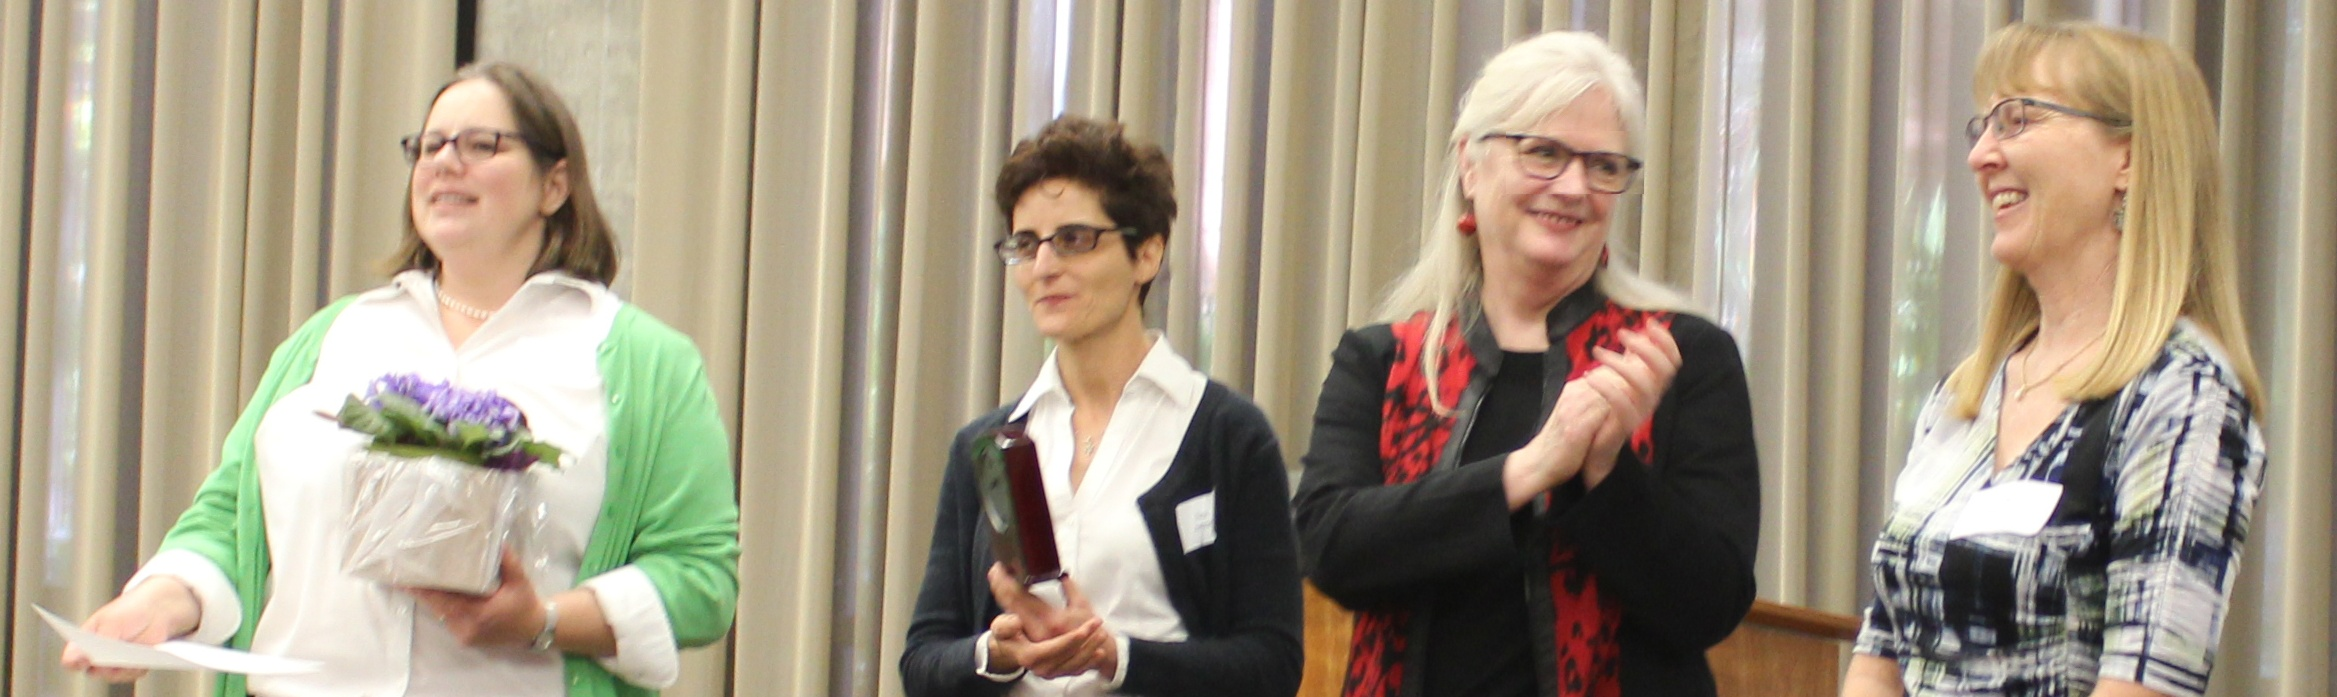 Photo of Kelli Ham receiving the Librarian of the Year Award from fellow librarians